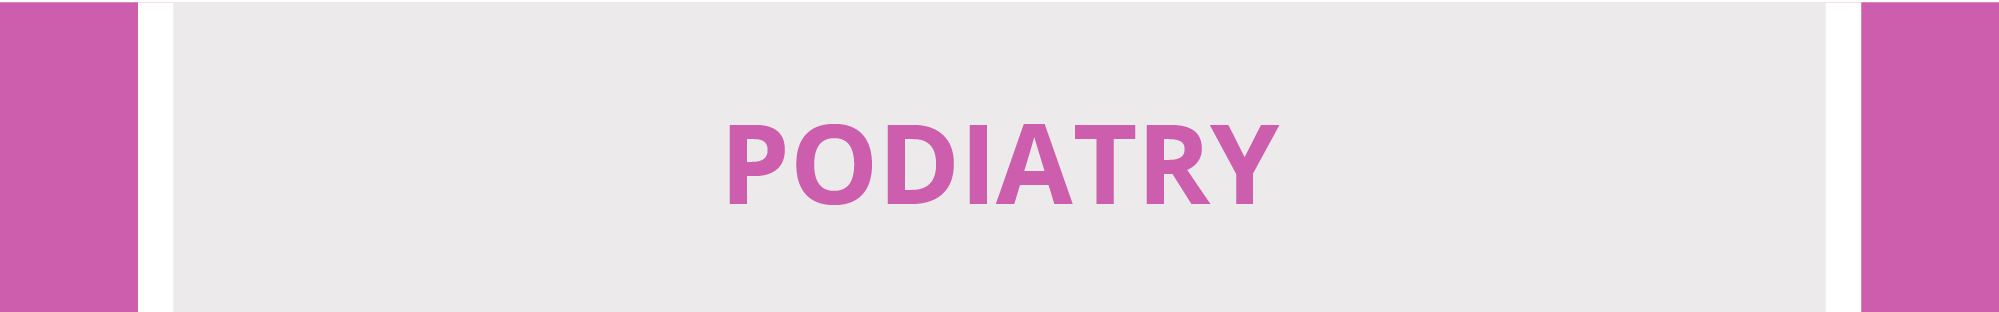 podiatry-banner-2018_Top.png